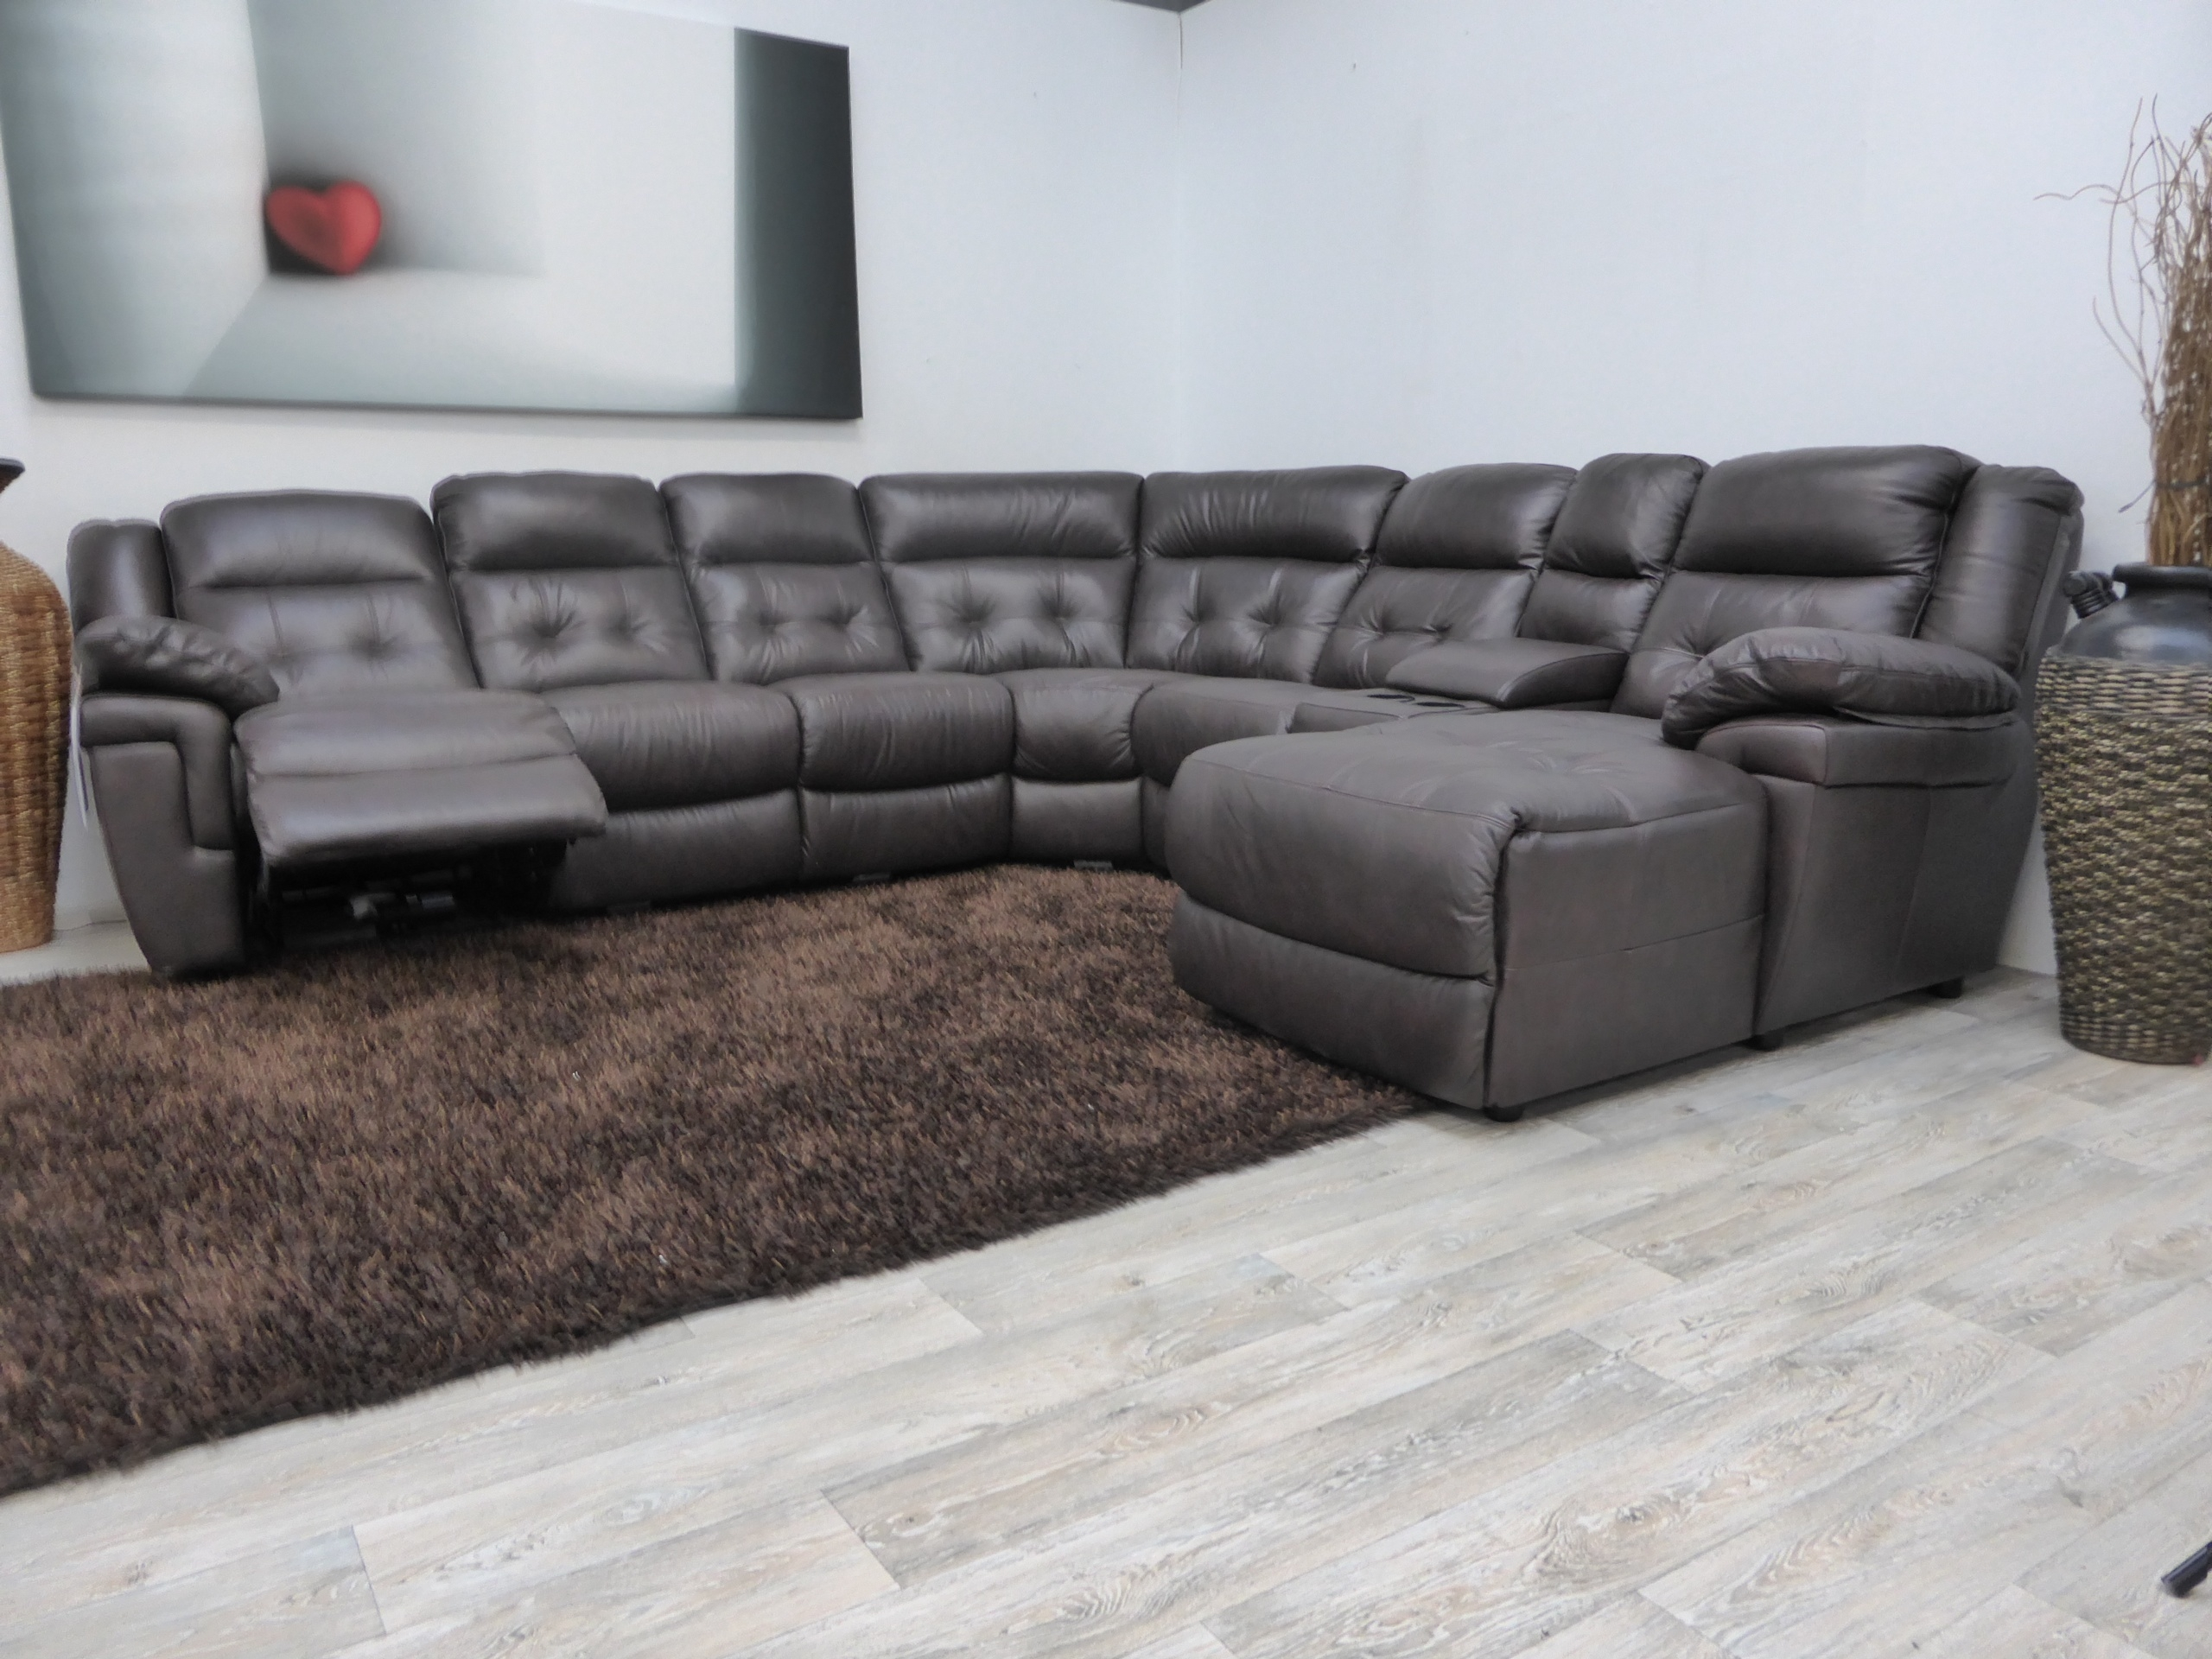 Living Room Best Of Trends Red Microfiber Sectional Sofa For In Durable Sectional Sofa (Image 11 of 15)